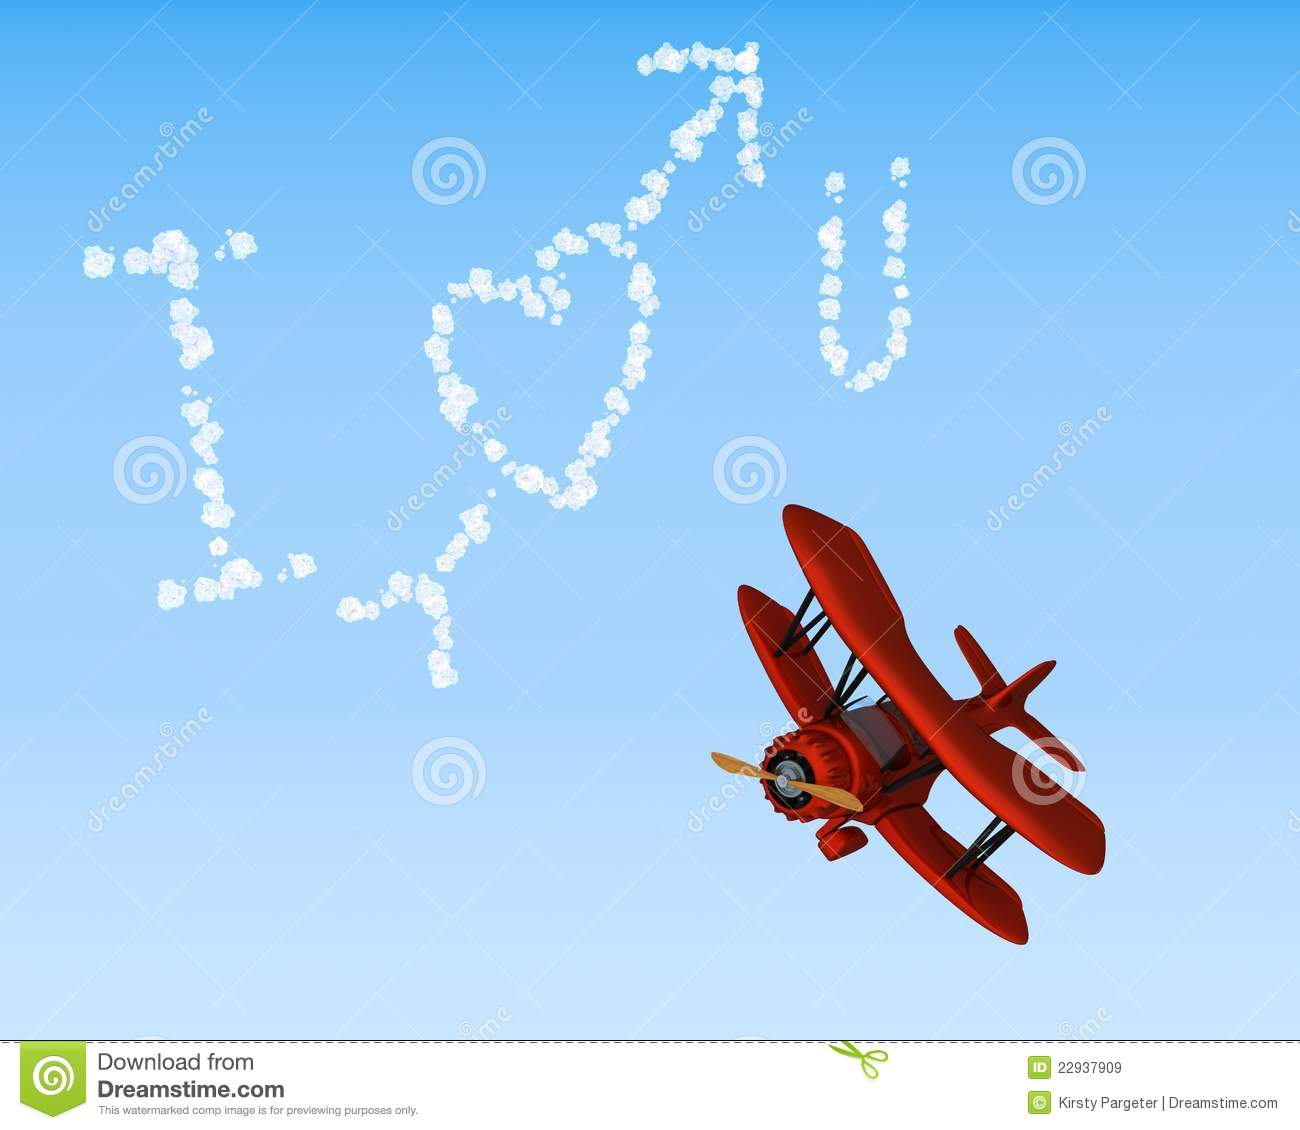 biplane sky writing i love you royalty free stock images airplane clip art free download Biplane Silhouette